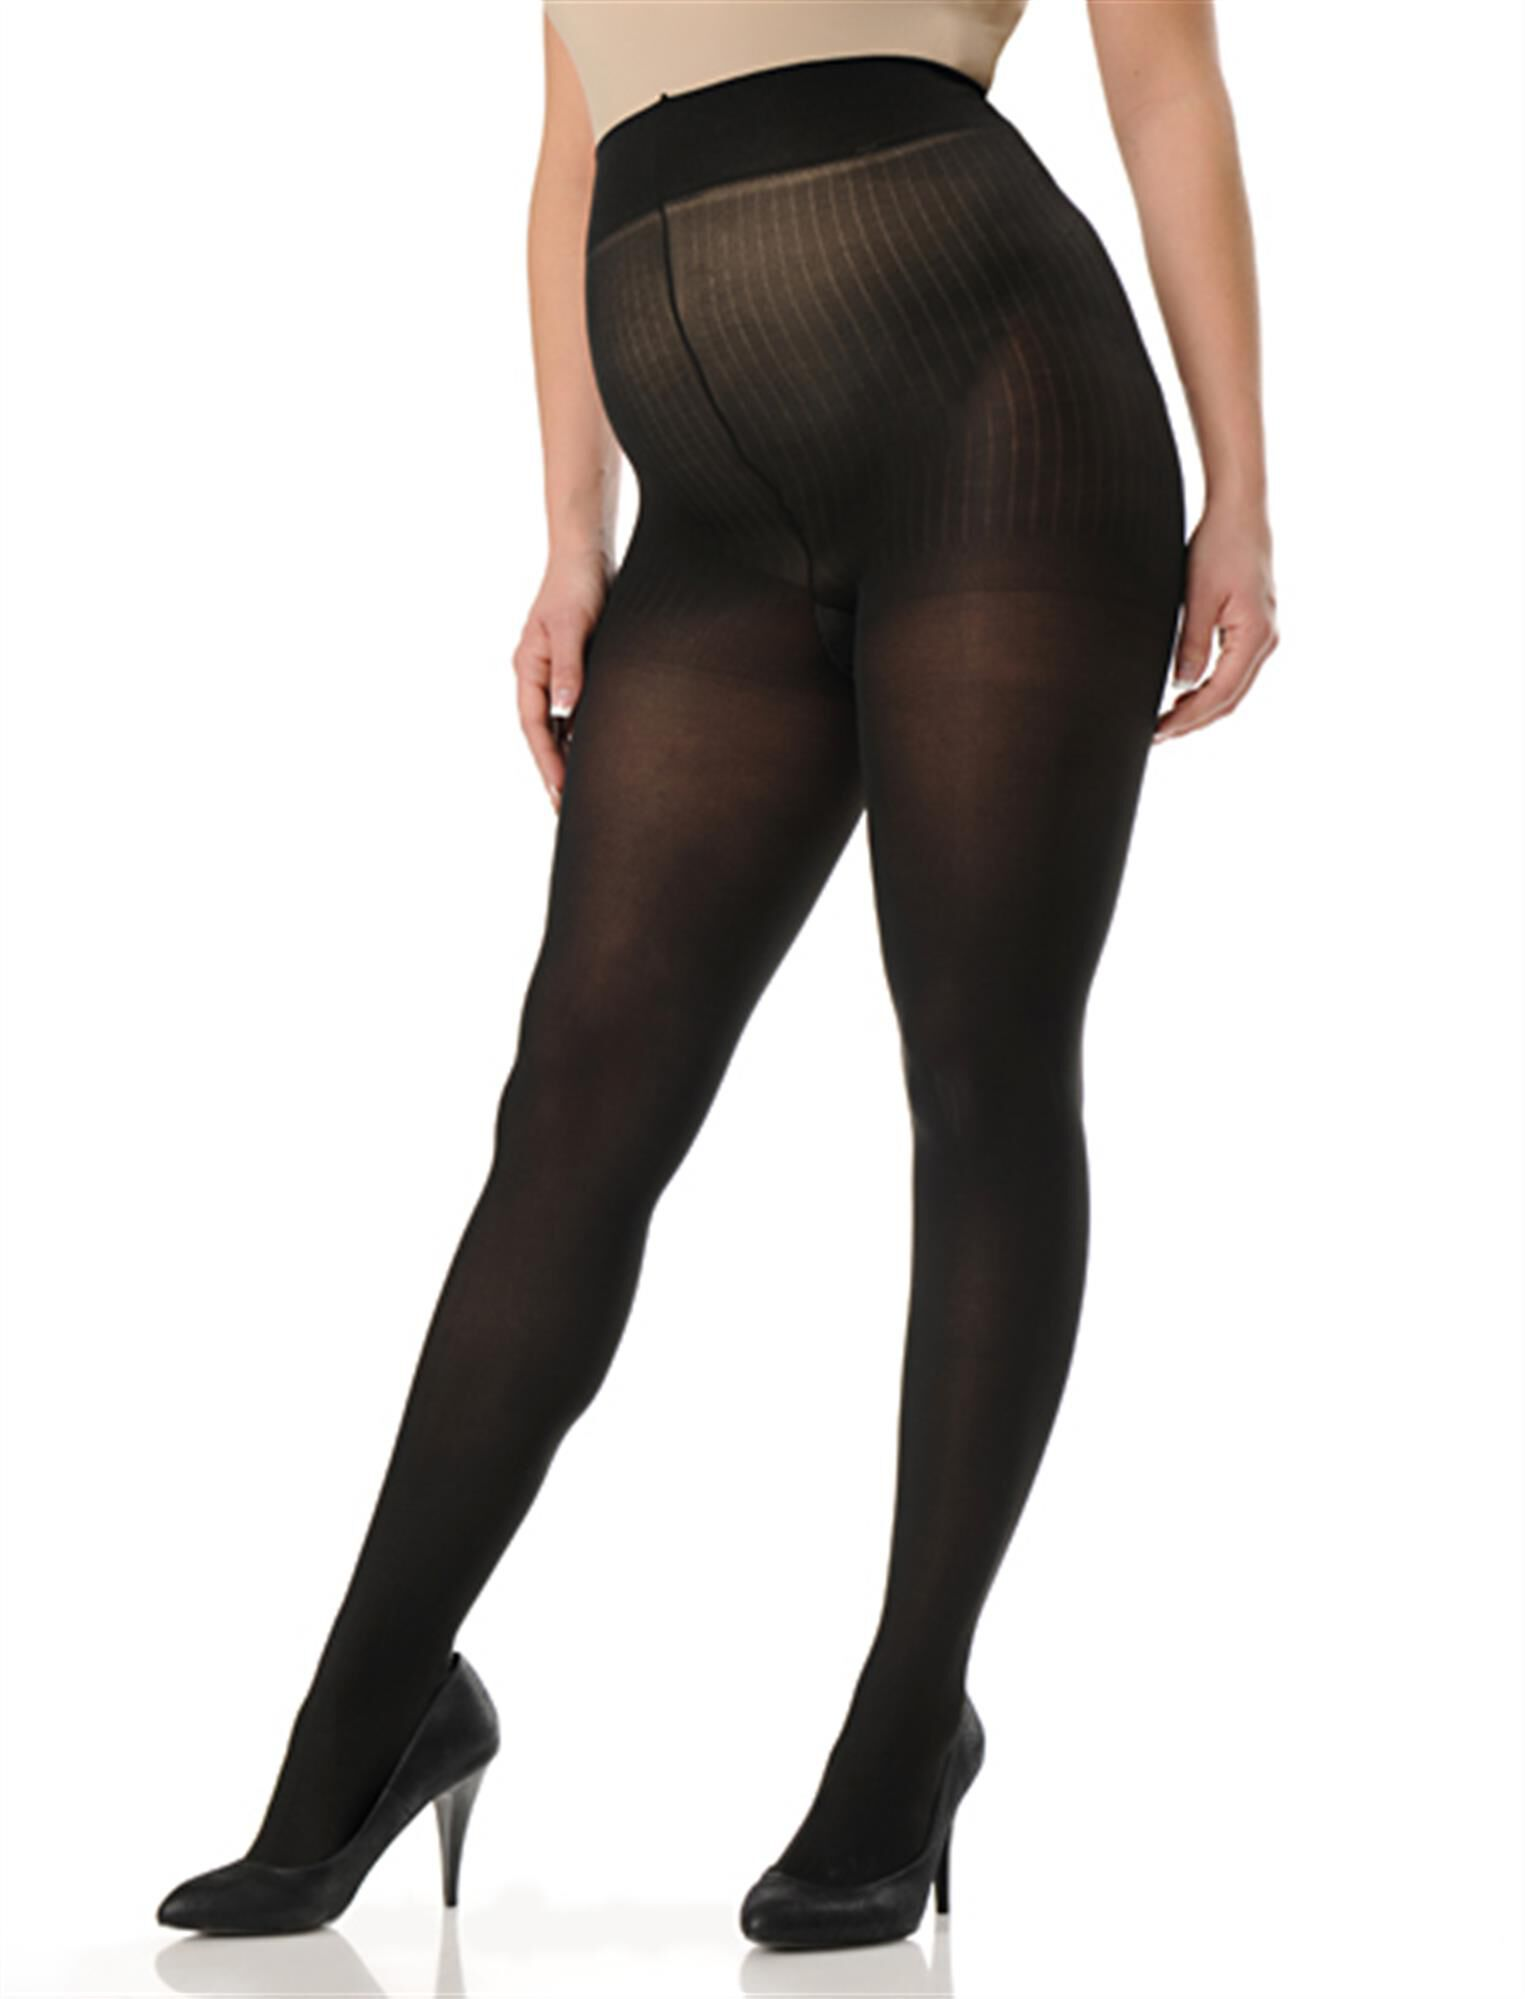 Plus Size Opaque Maternity Tights